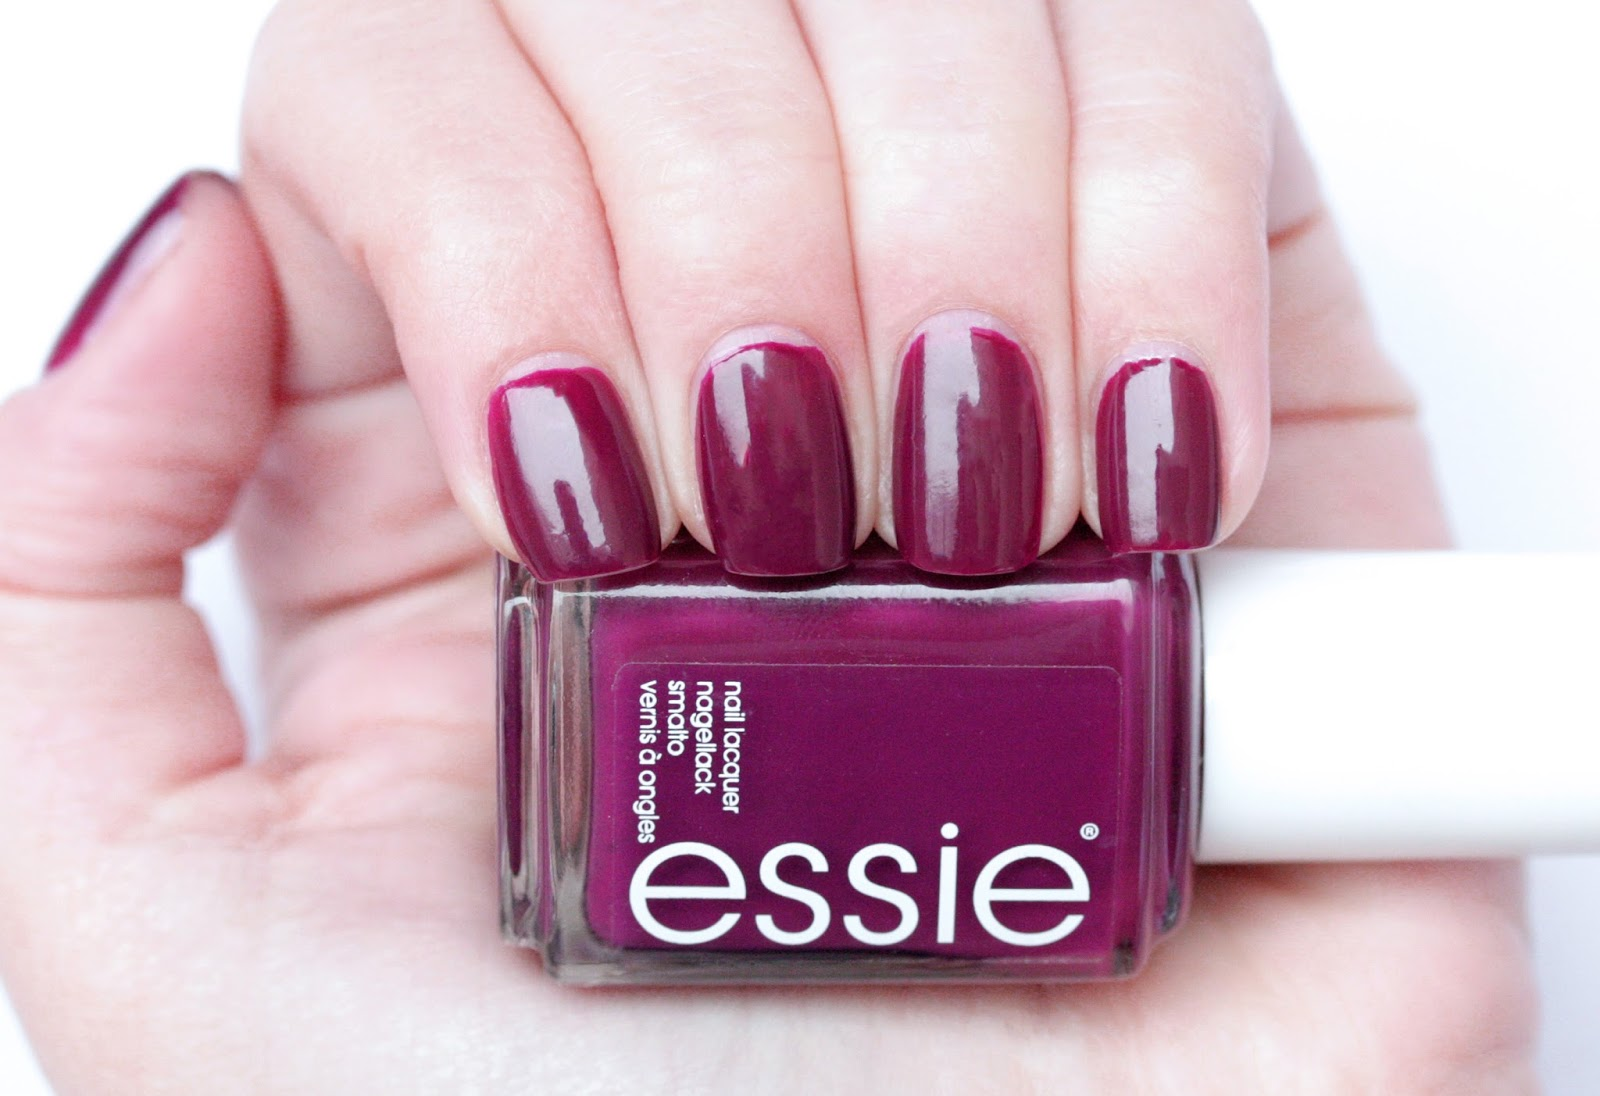 Essie Bahama Mama / Review and Swatches | RosyChicc